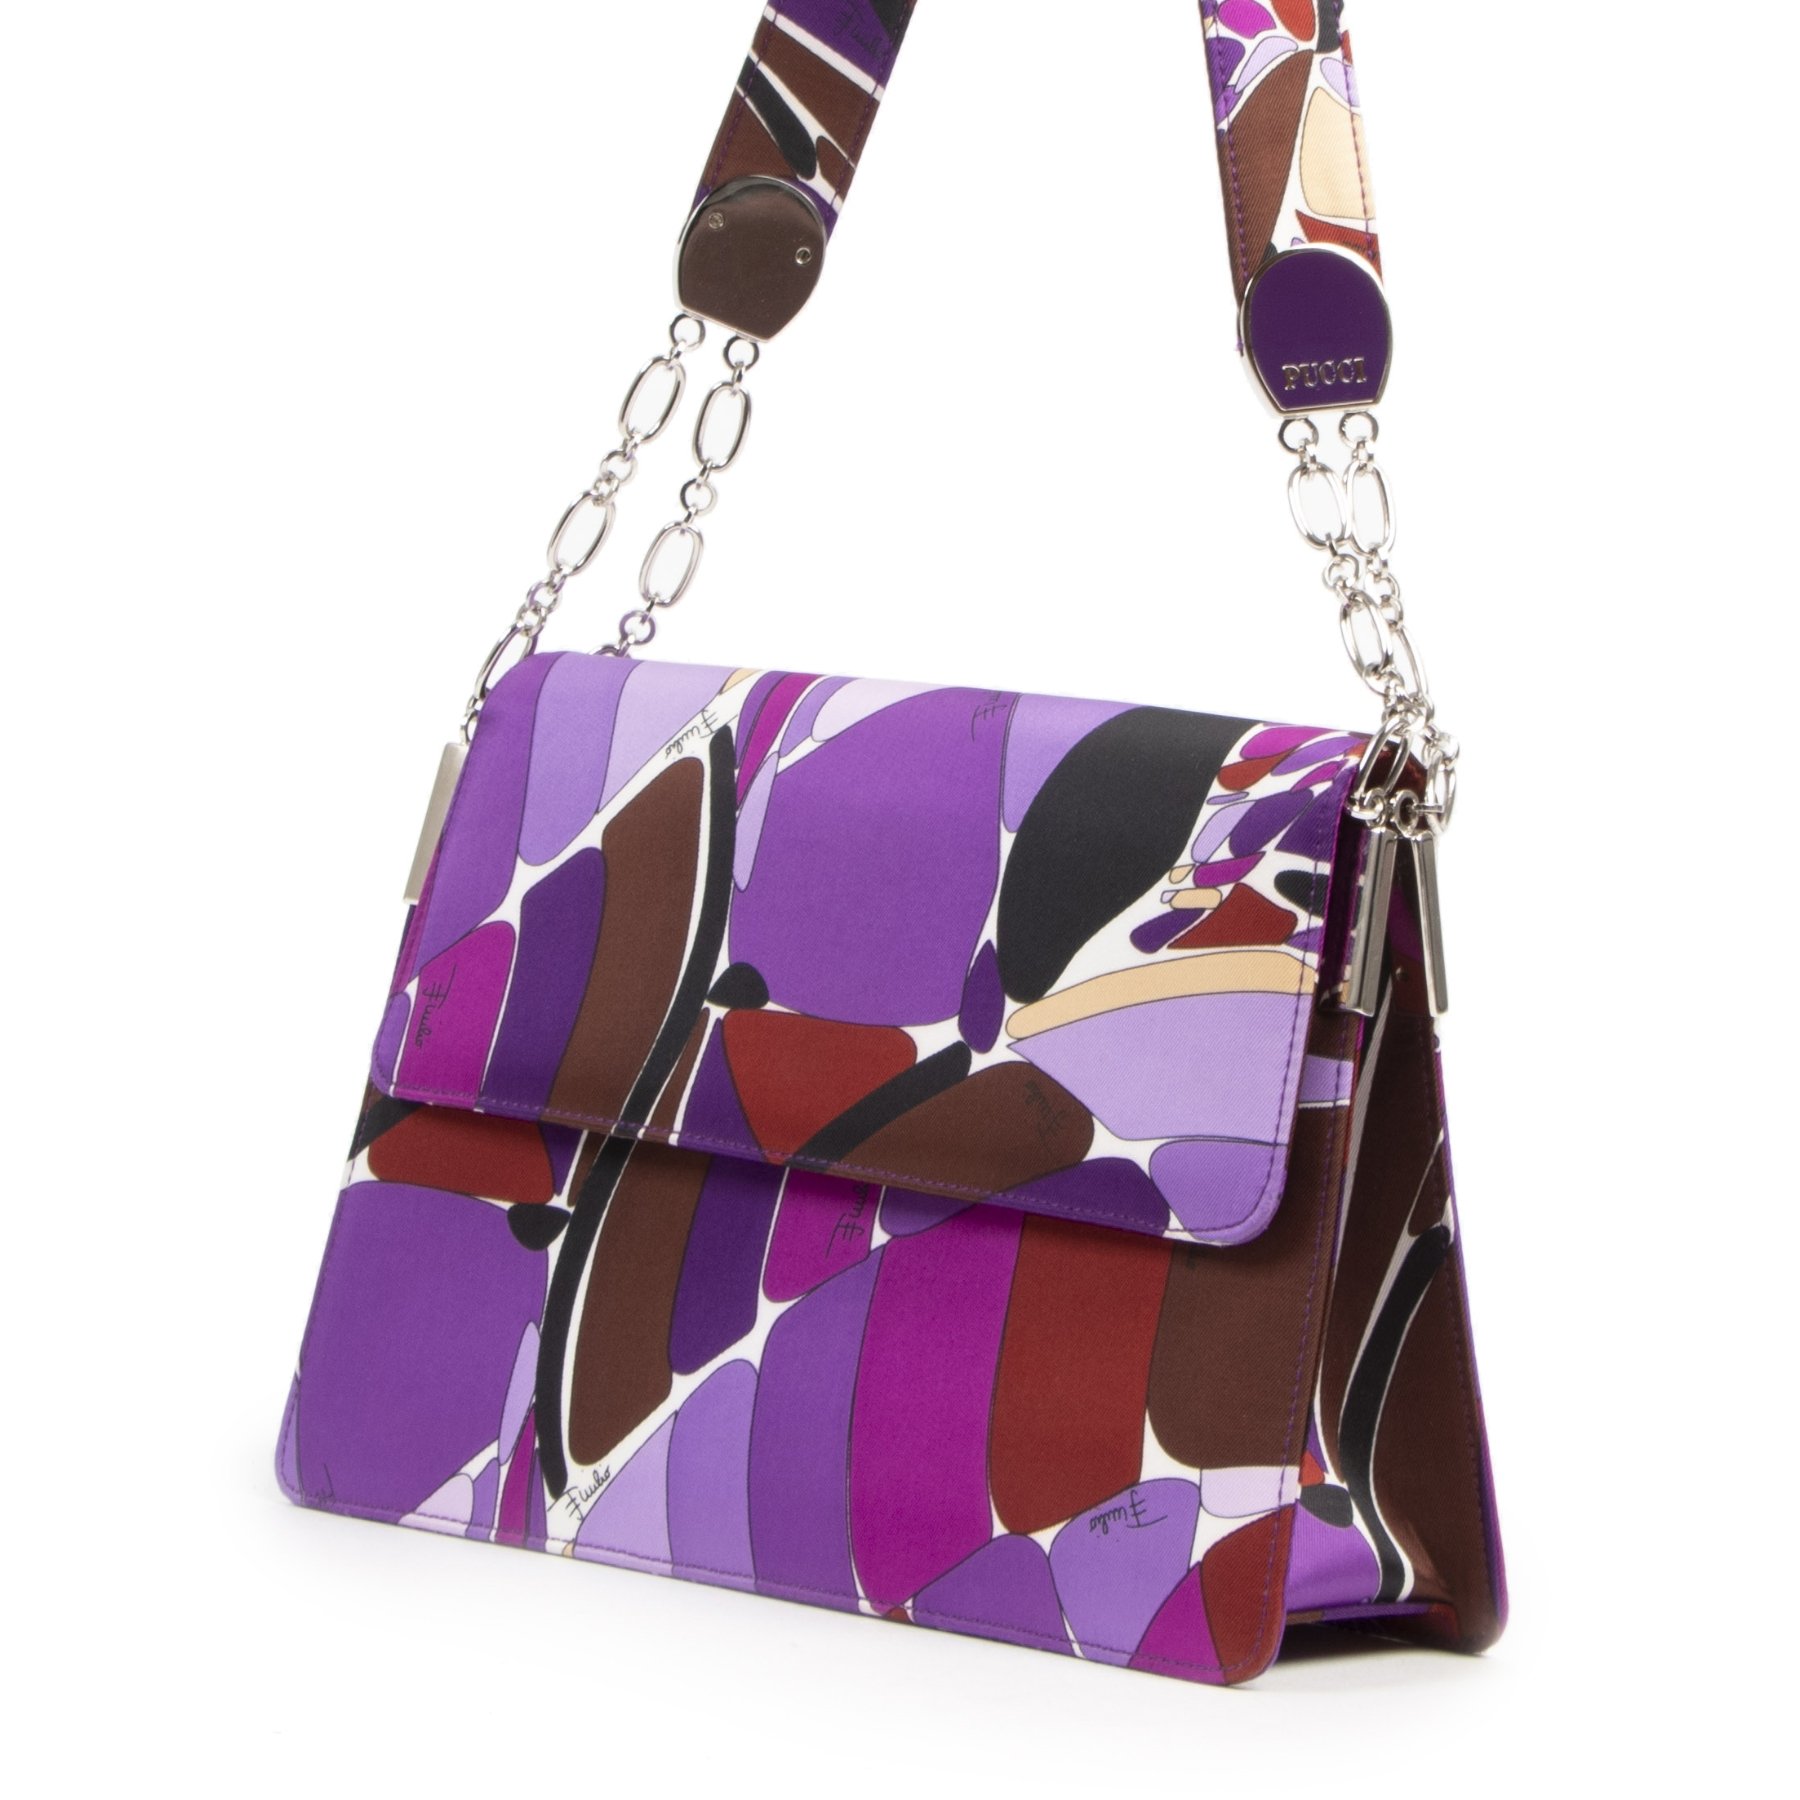 Pucci Silk Evening Bag